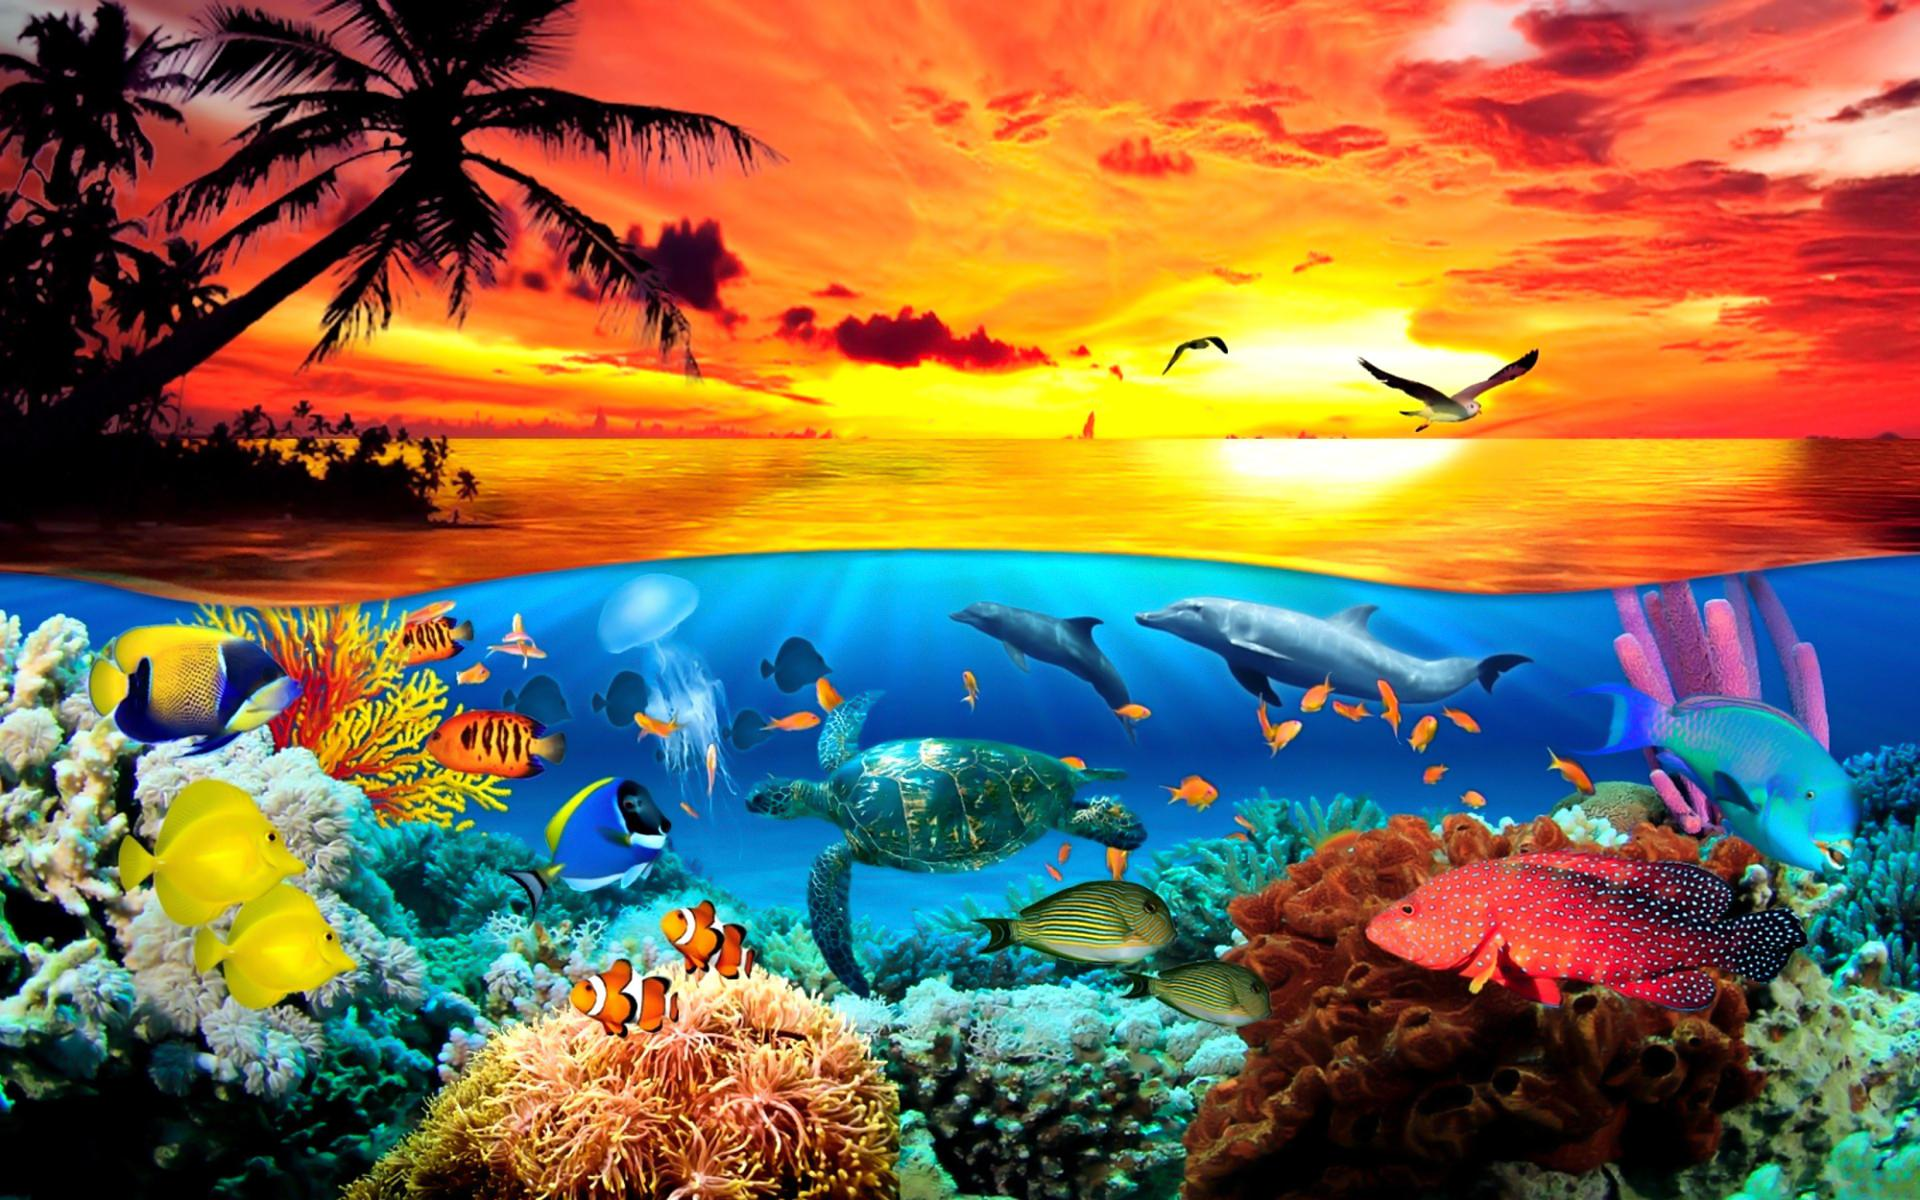 Top 27 Sea Animals Wallpapers In Hd: Under The Sea Wallpaper